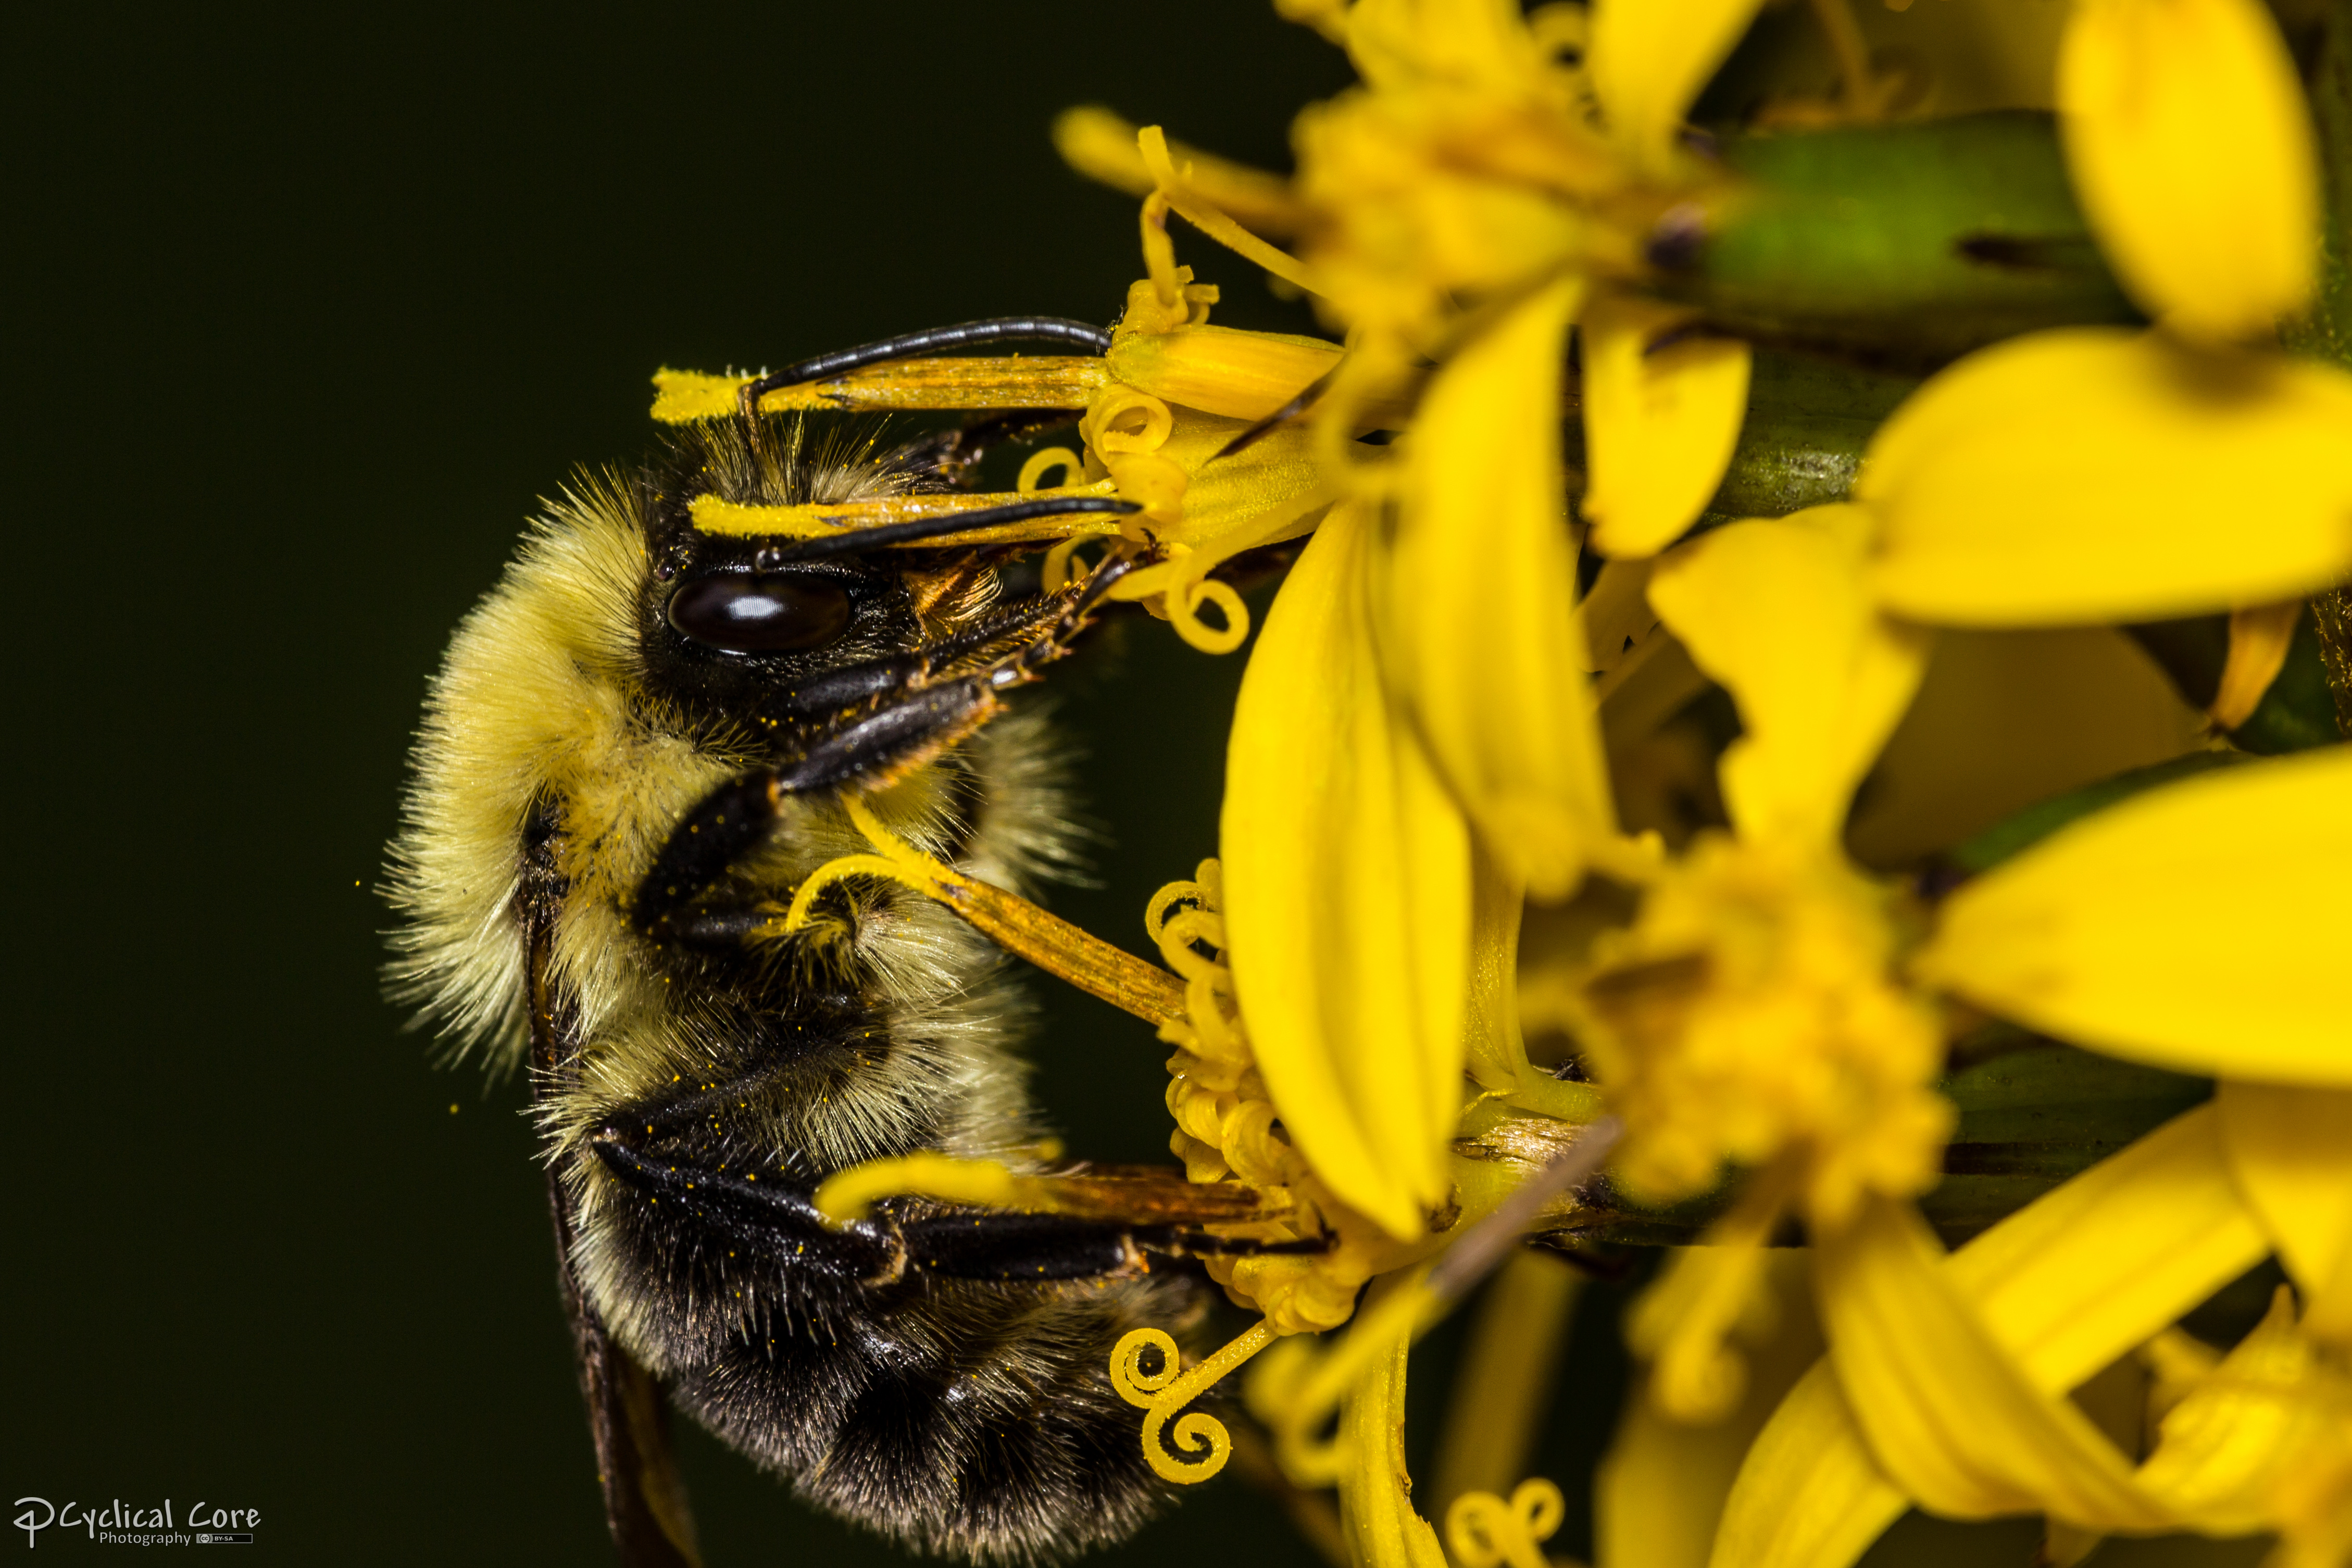 Canadian bumblebee 1 by CyclicalCore